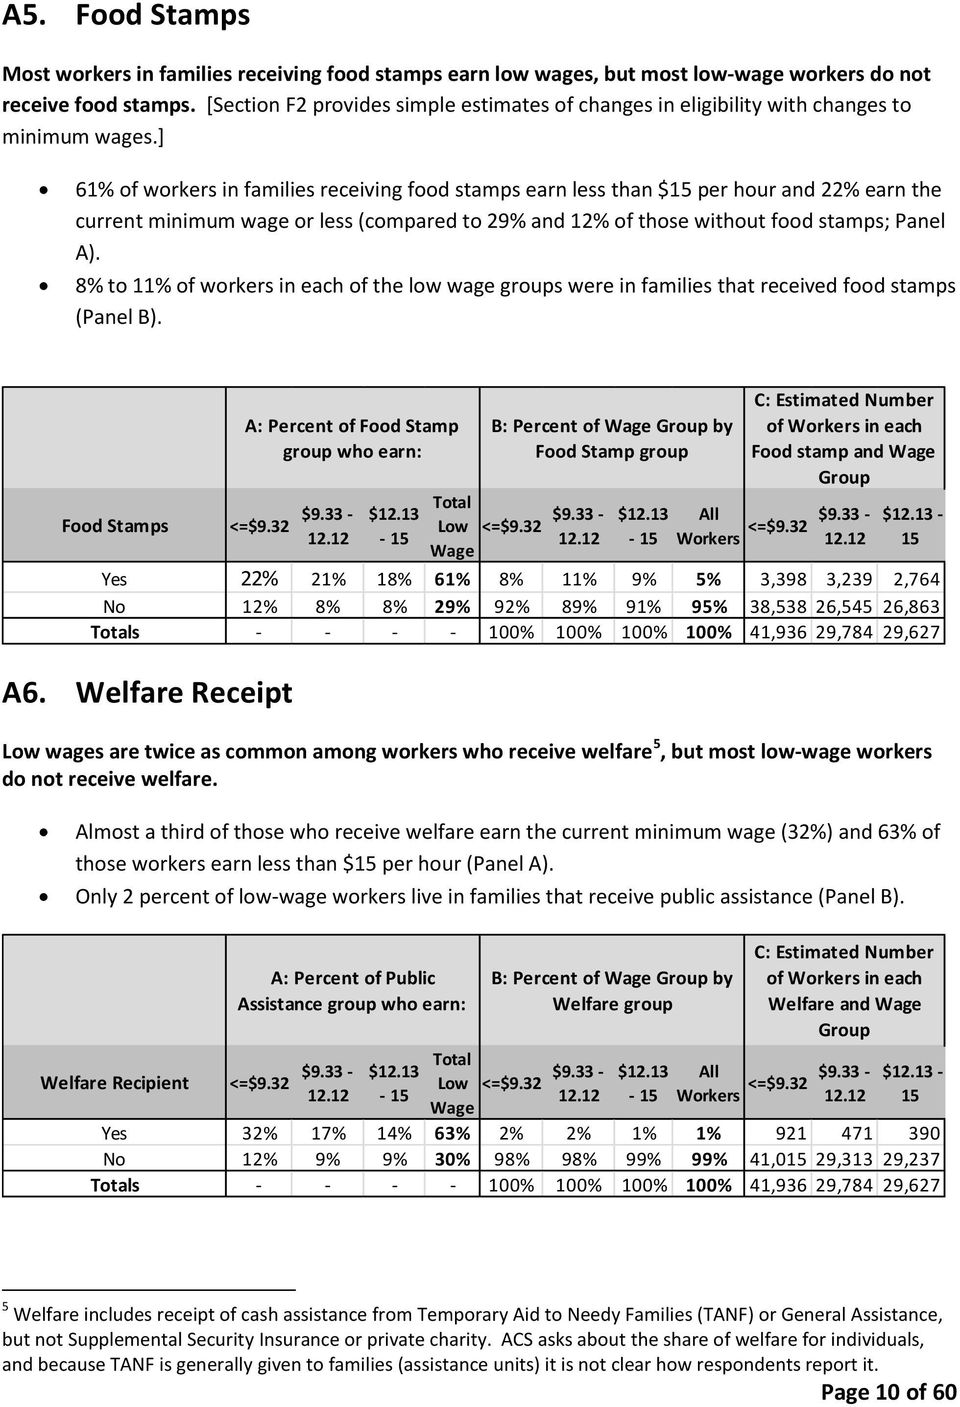 ] 61% of workers in families receiving food stamps earn less than $15 per hour and 22% earn the current minimum wage or less (compared to 29% and 12% of those without food stamps; Panel A).